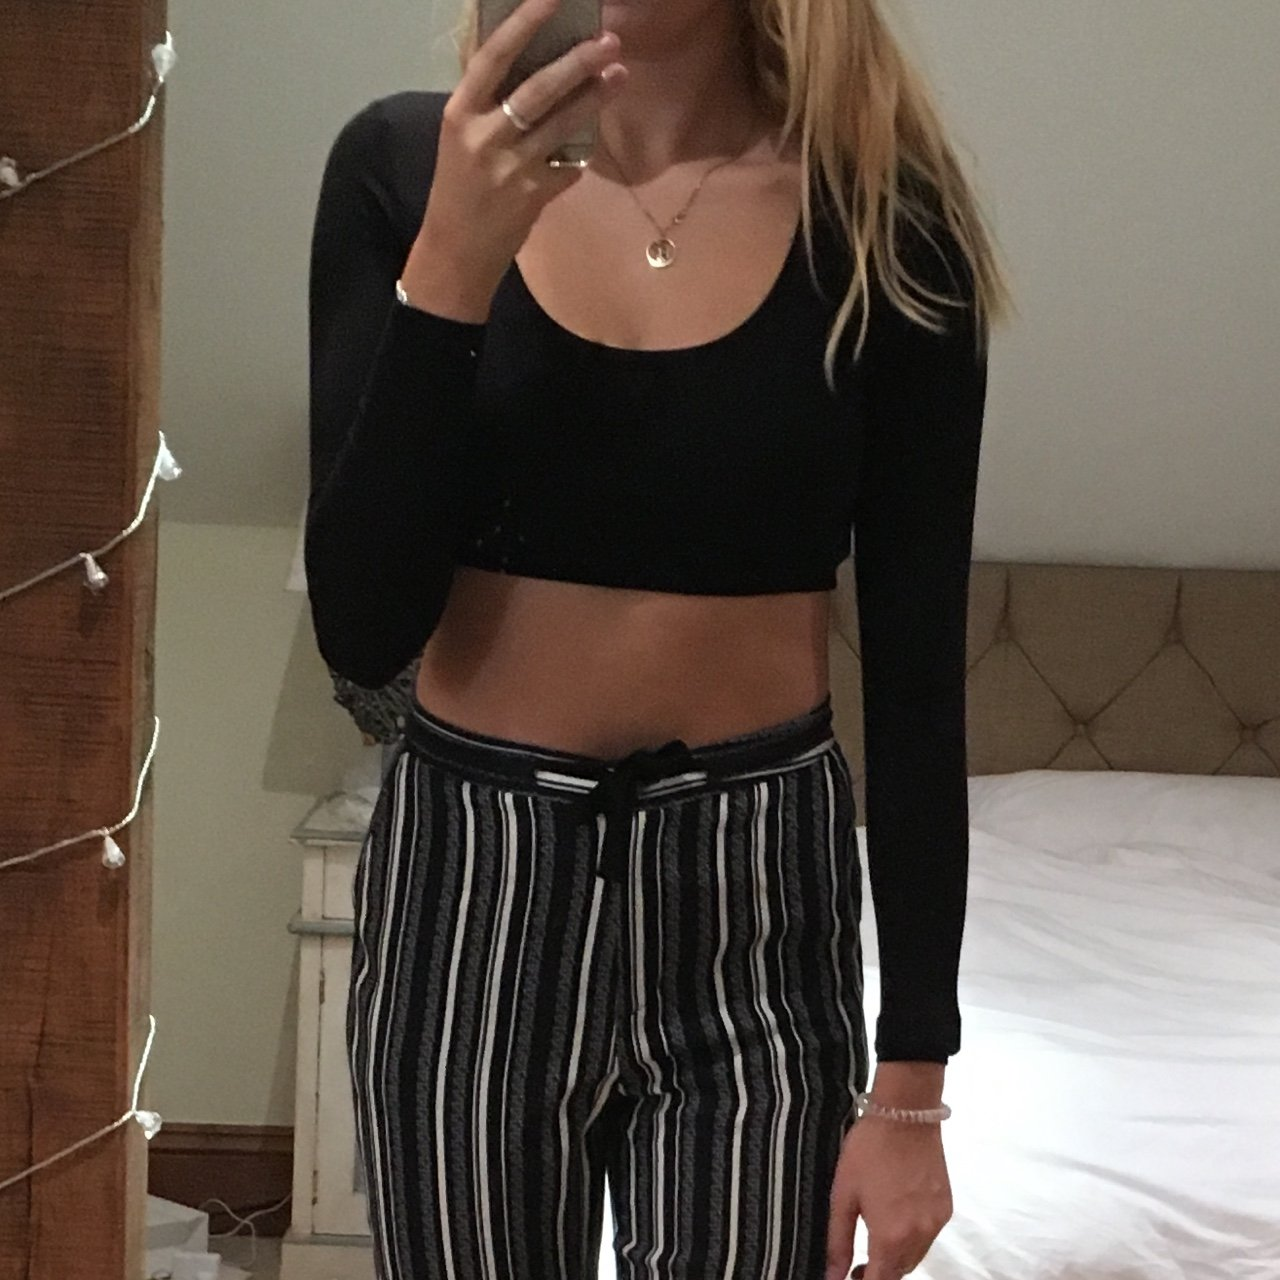 67059c73ccb4a Cropped long sleeve black top. Worn once.  asos  cropped a - Depop